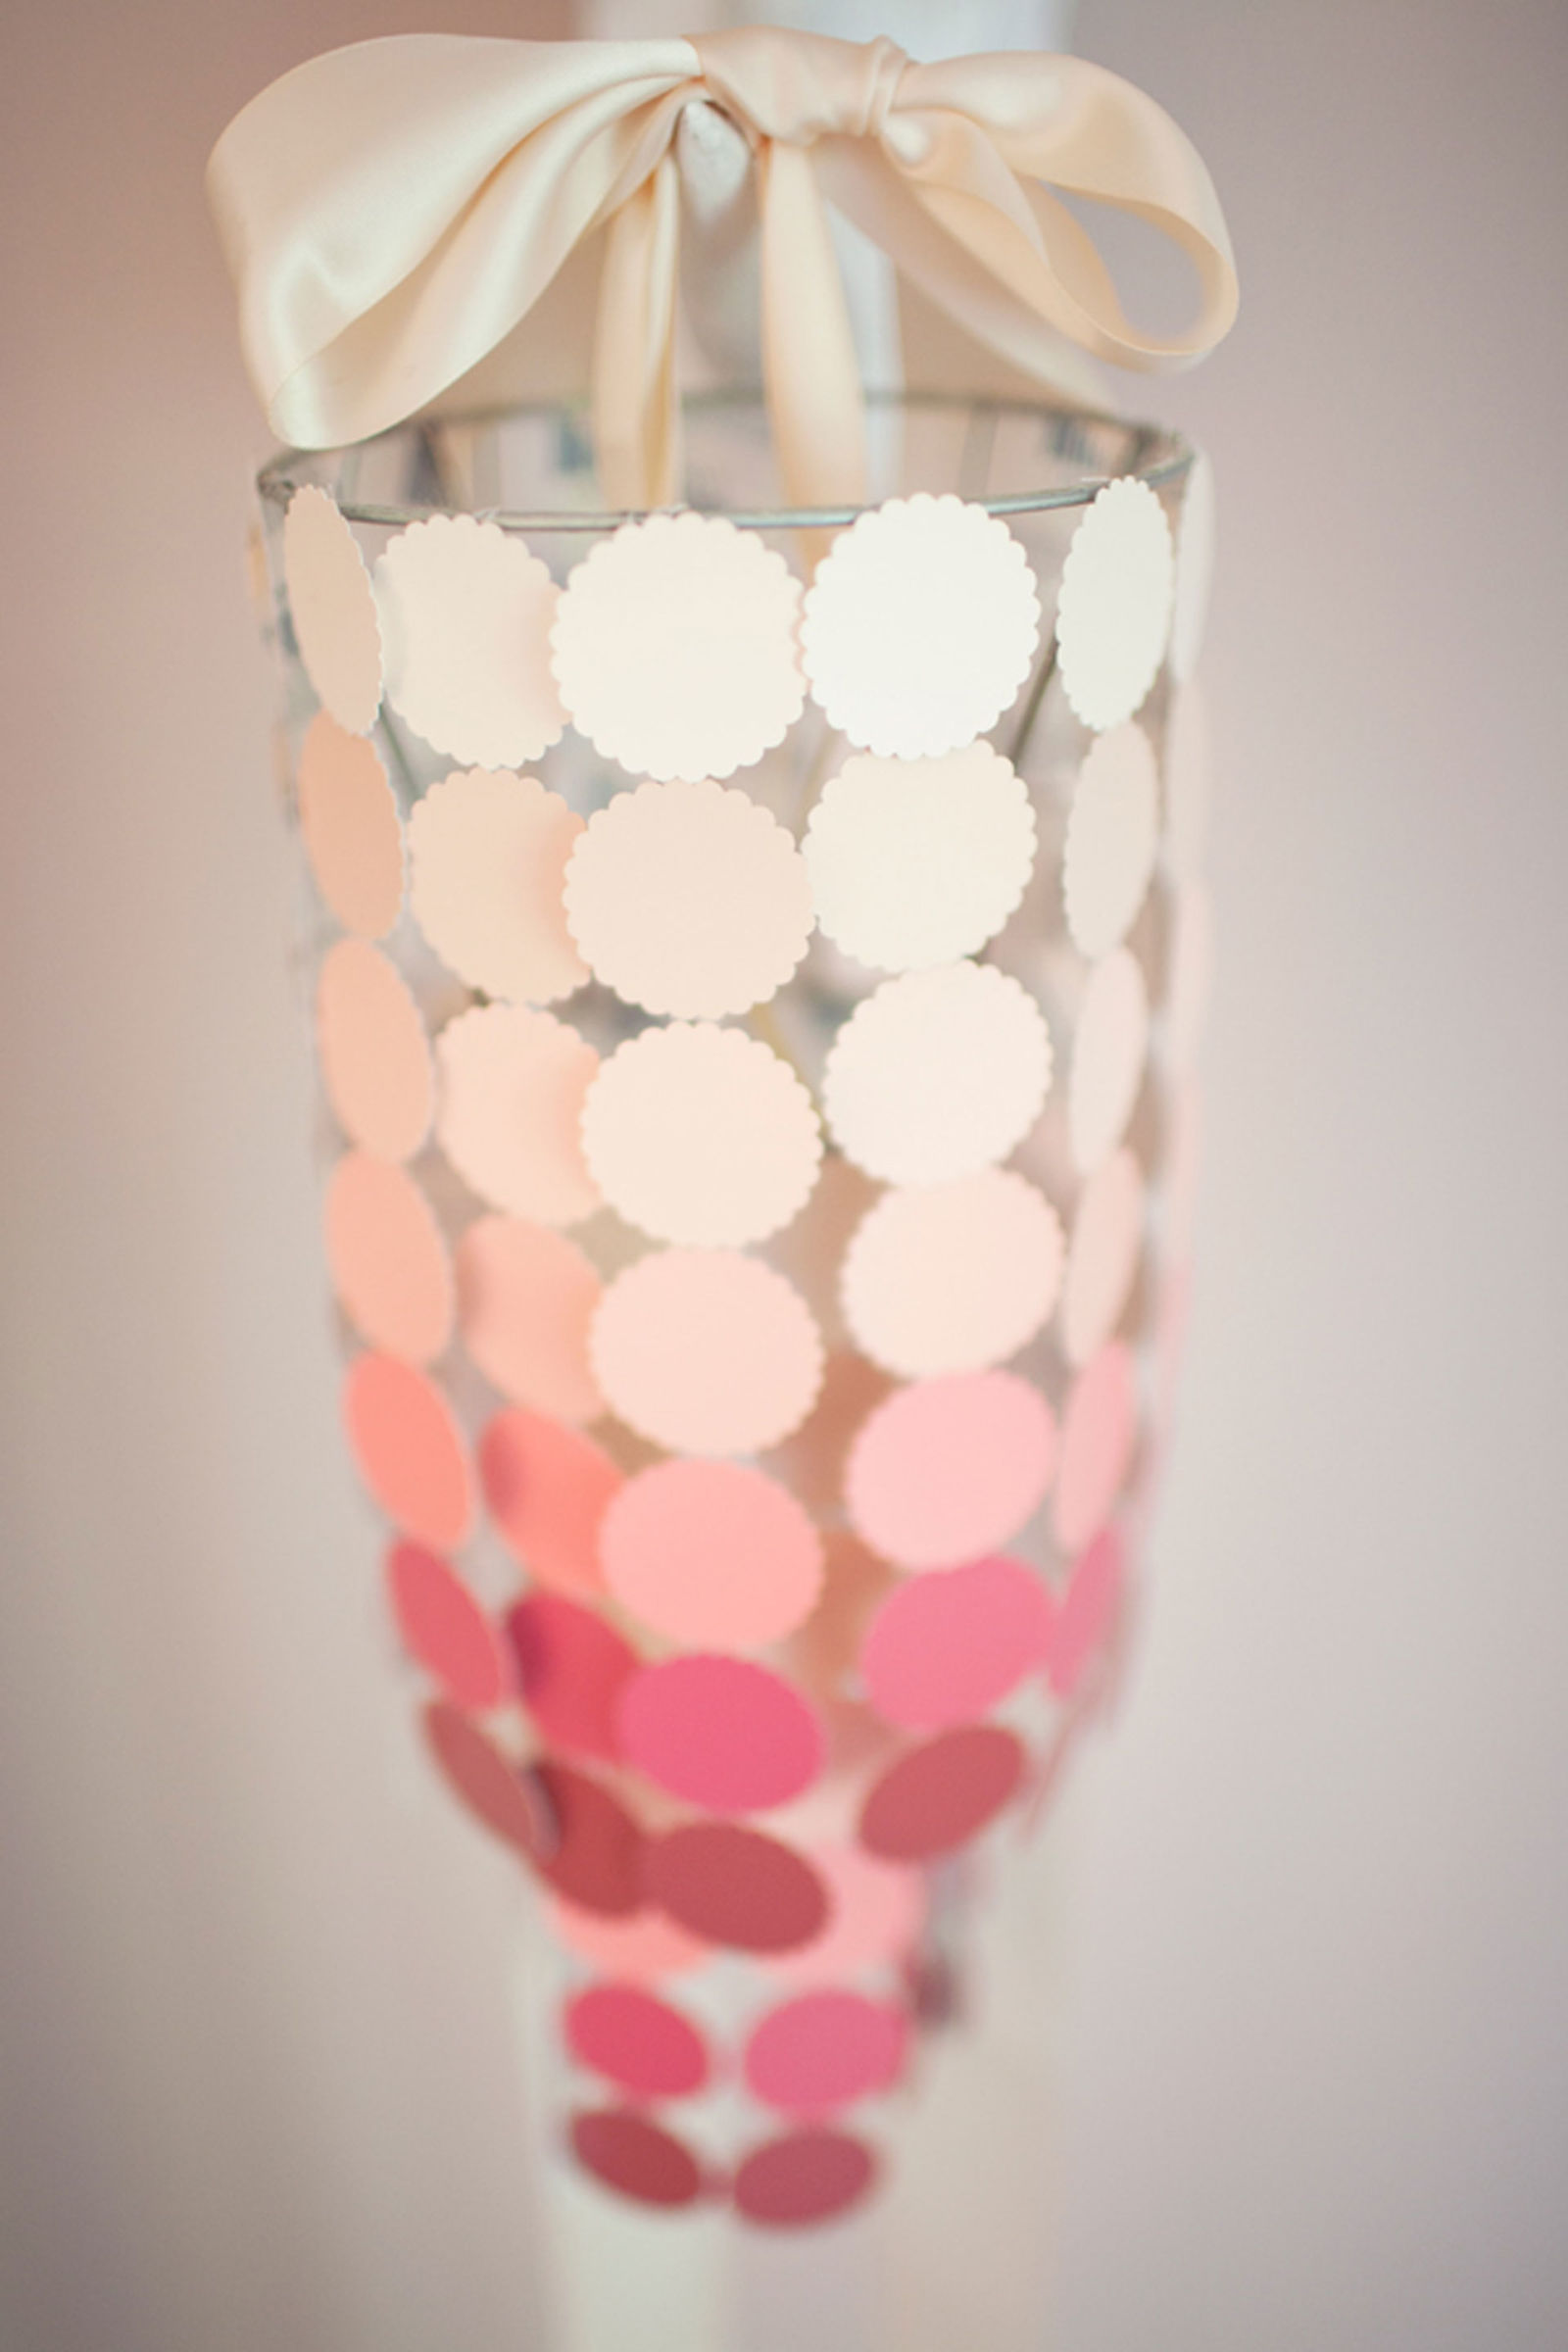 DIY Projects Using Paint ChipsEasy Paint Chip Crafts